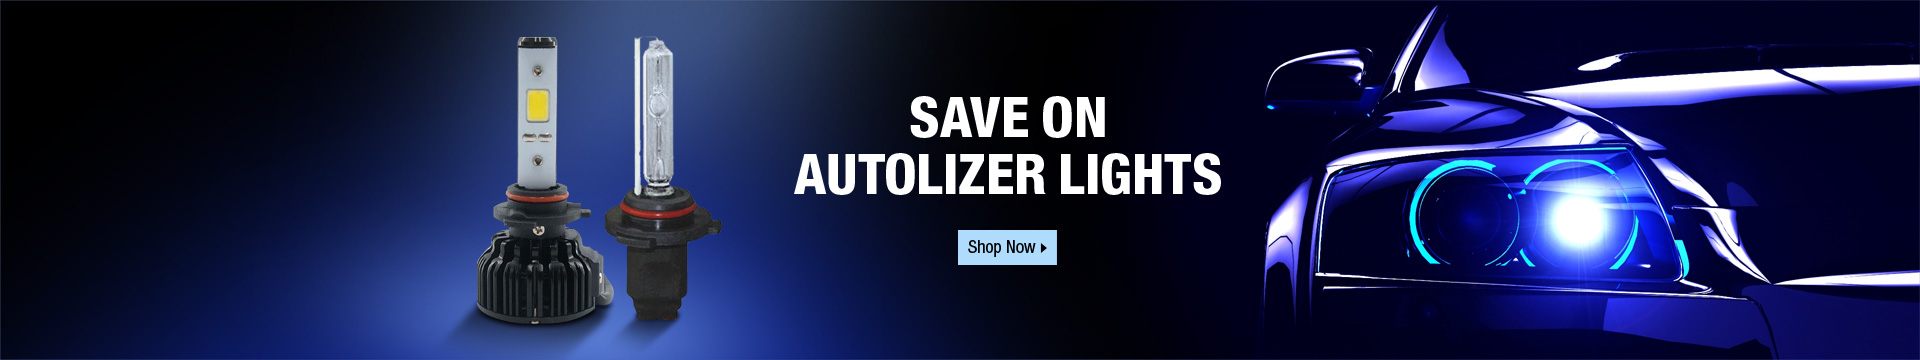 Save on Autolizer lights